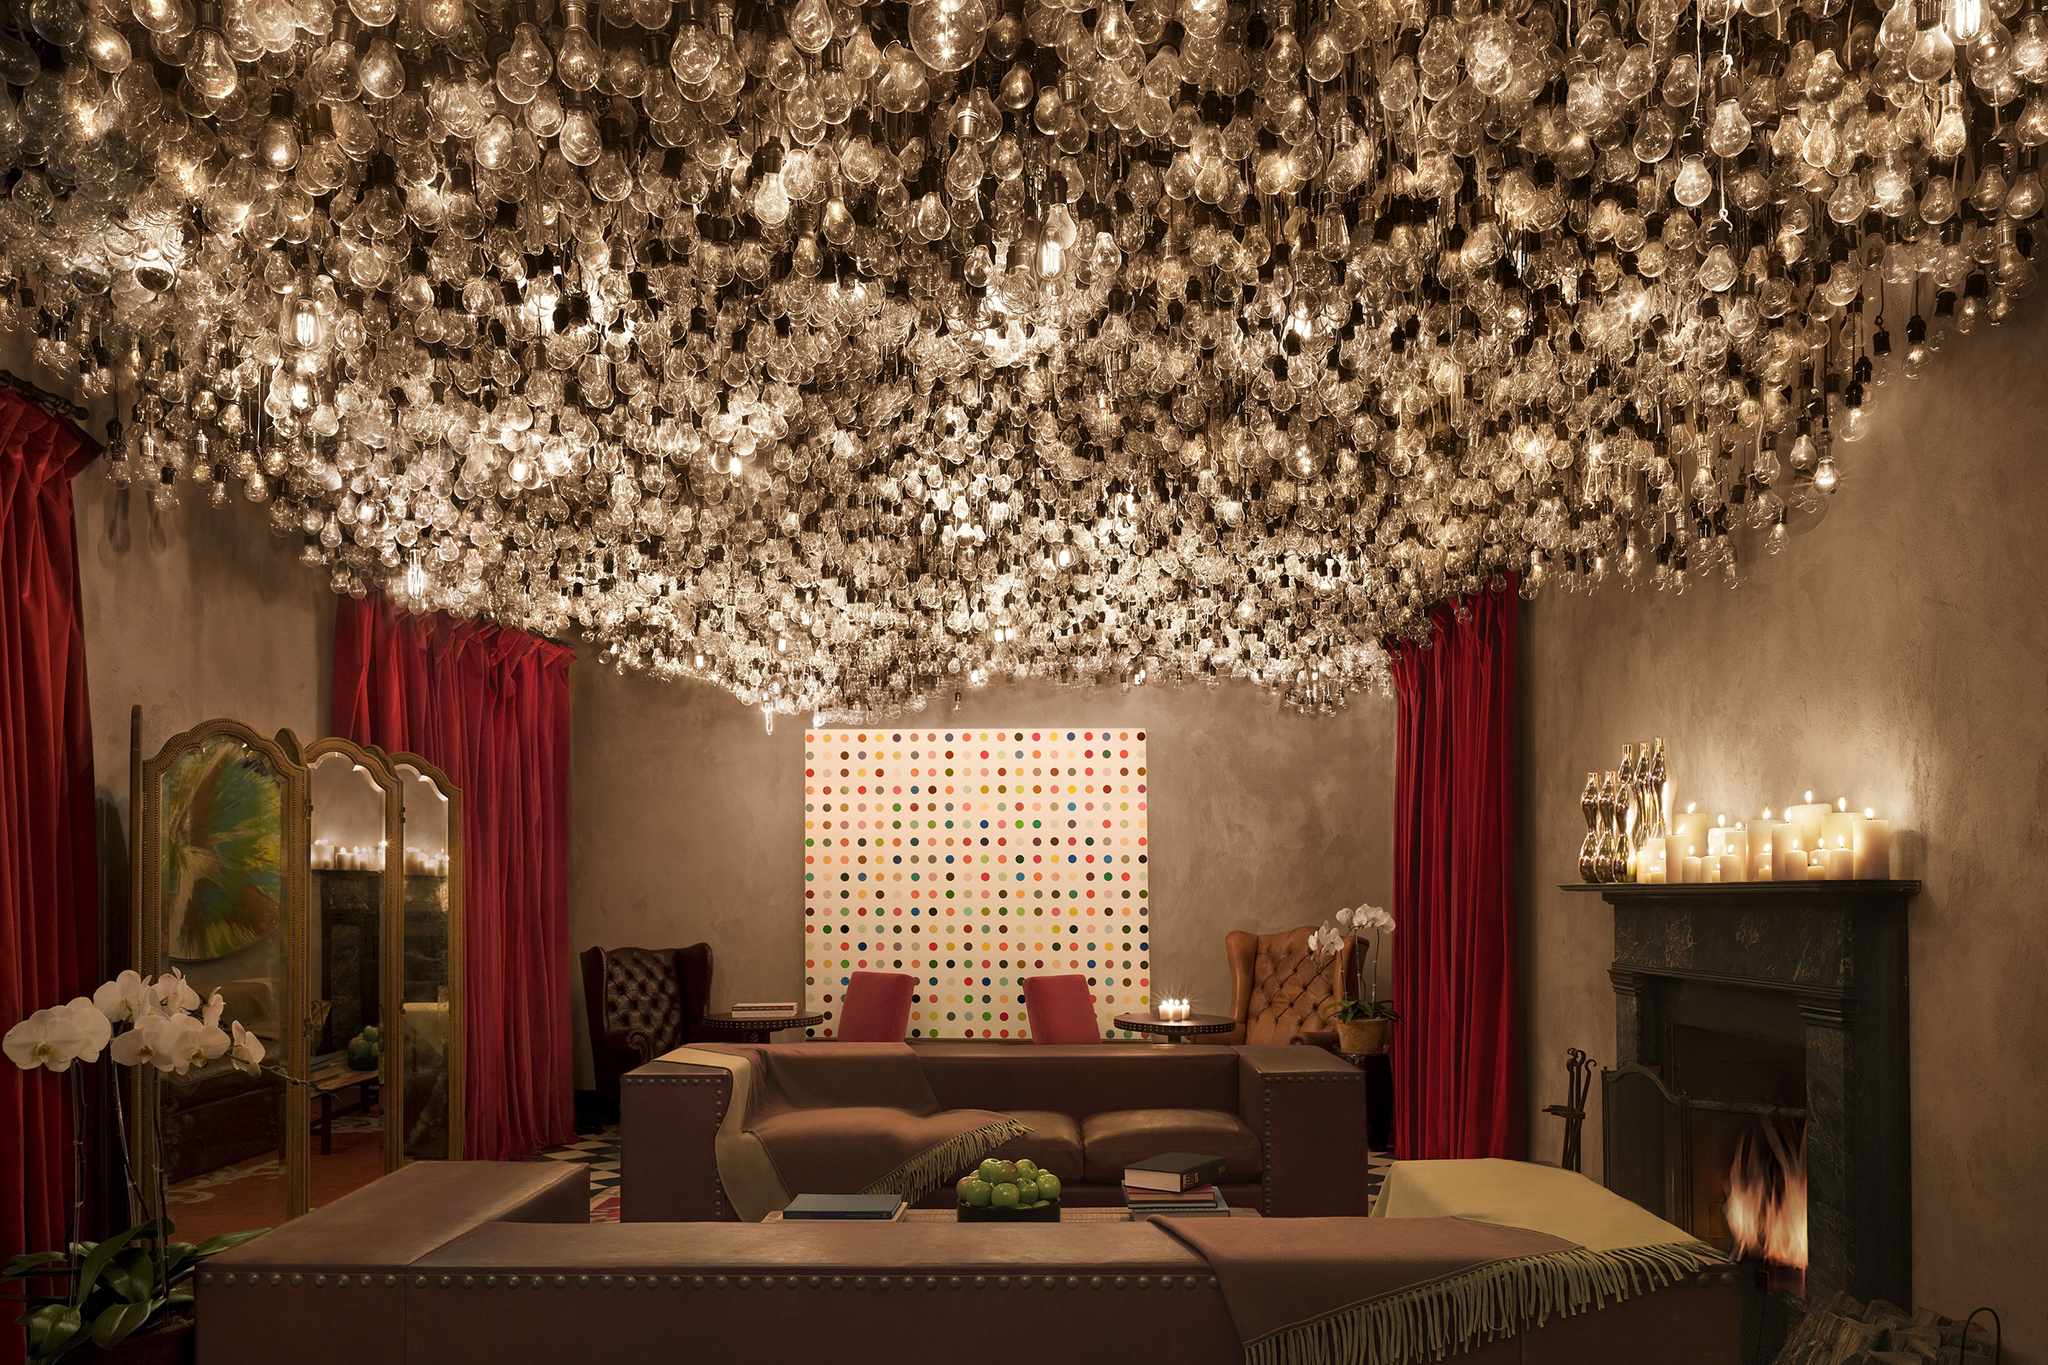 The sexiest hotels in NYC